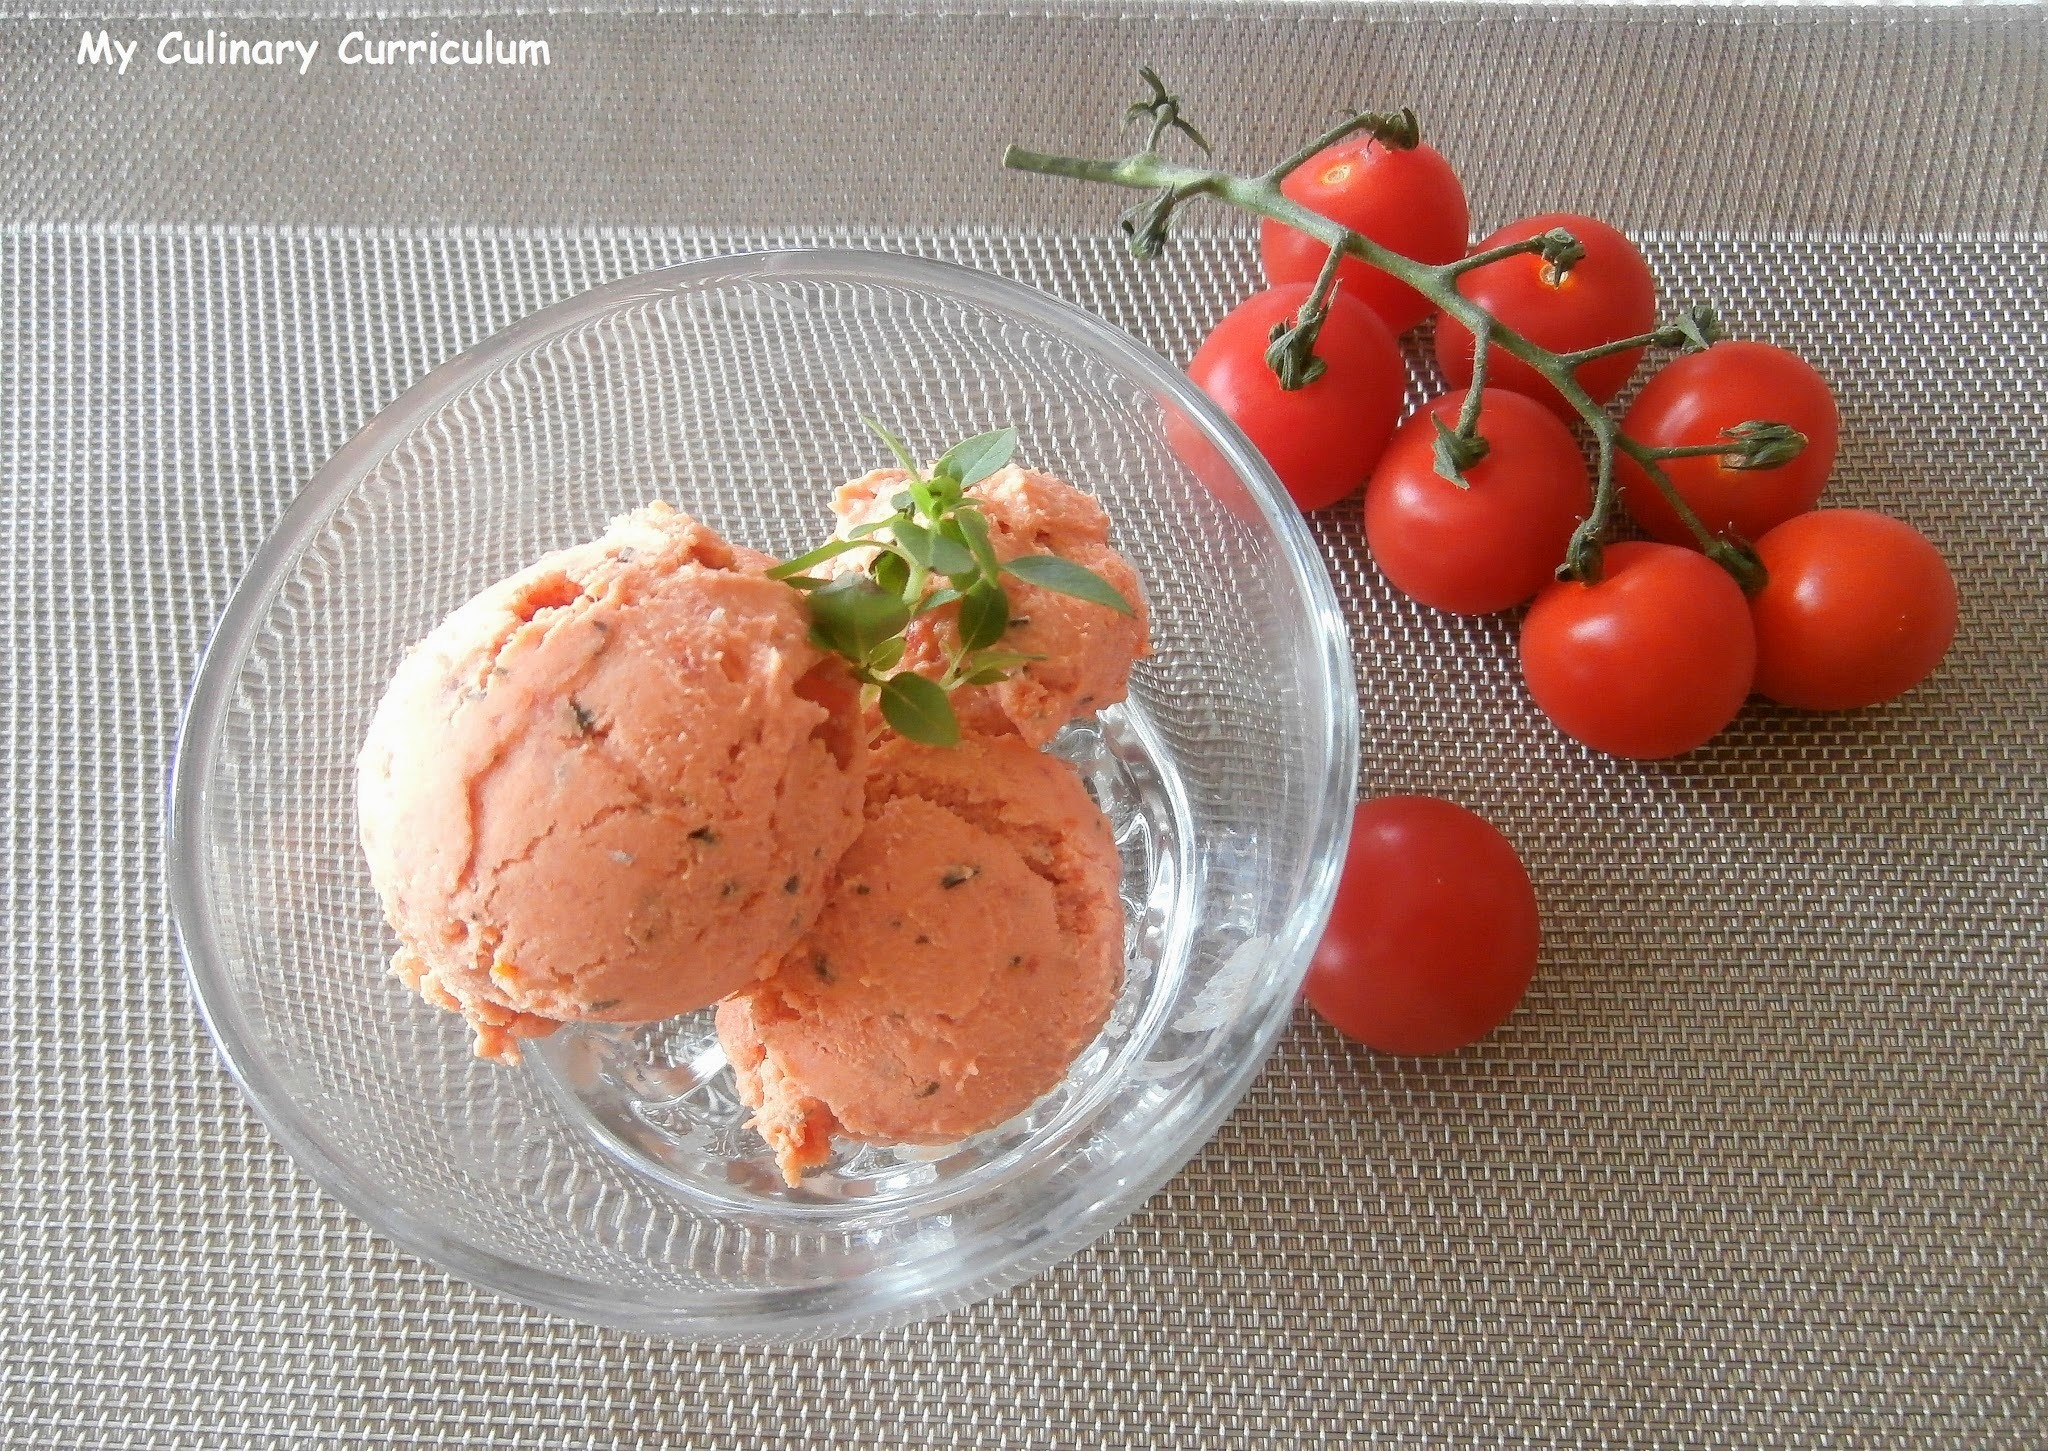 Glace aux tomates confites, chèvre frais et basilic sans sorbetière - Yummy Day Givré (Ice candied tomato, goat cheese and basil without ice cream maker)